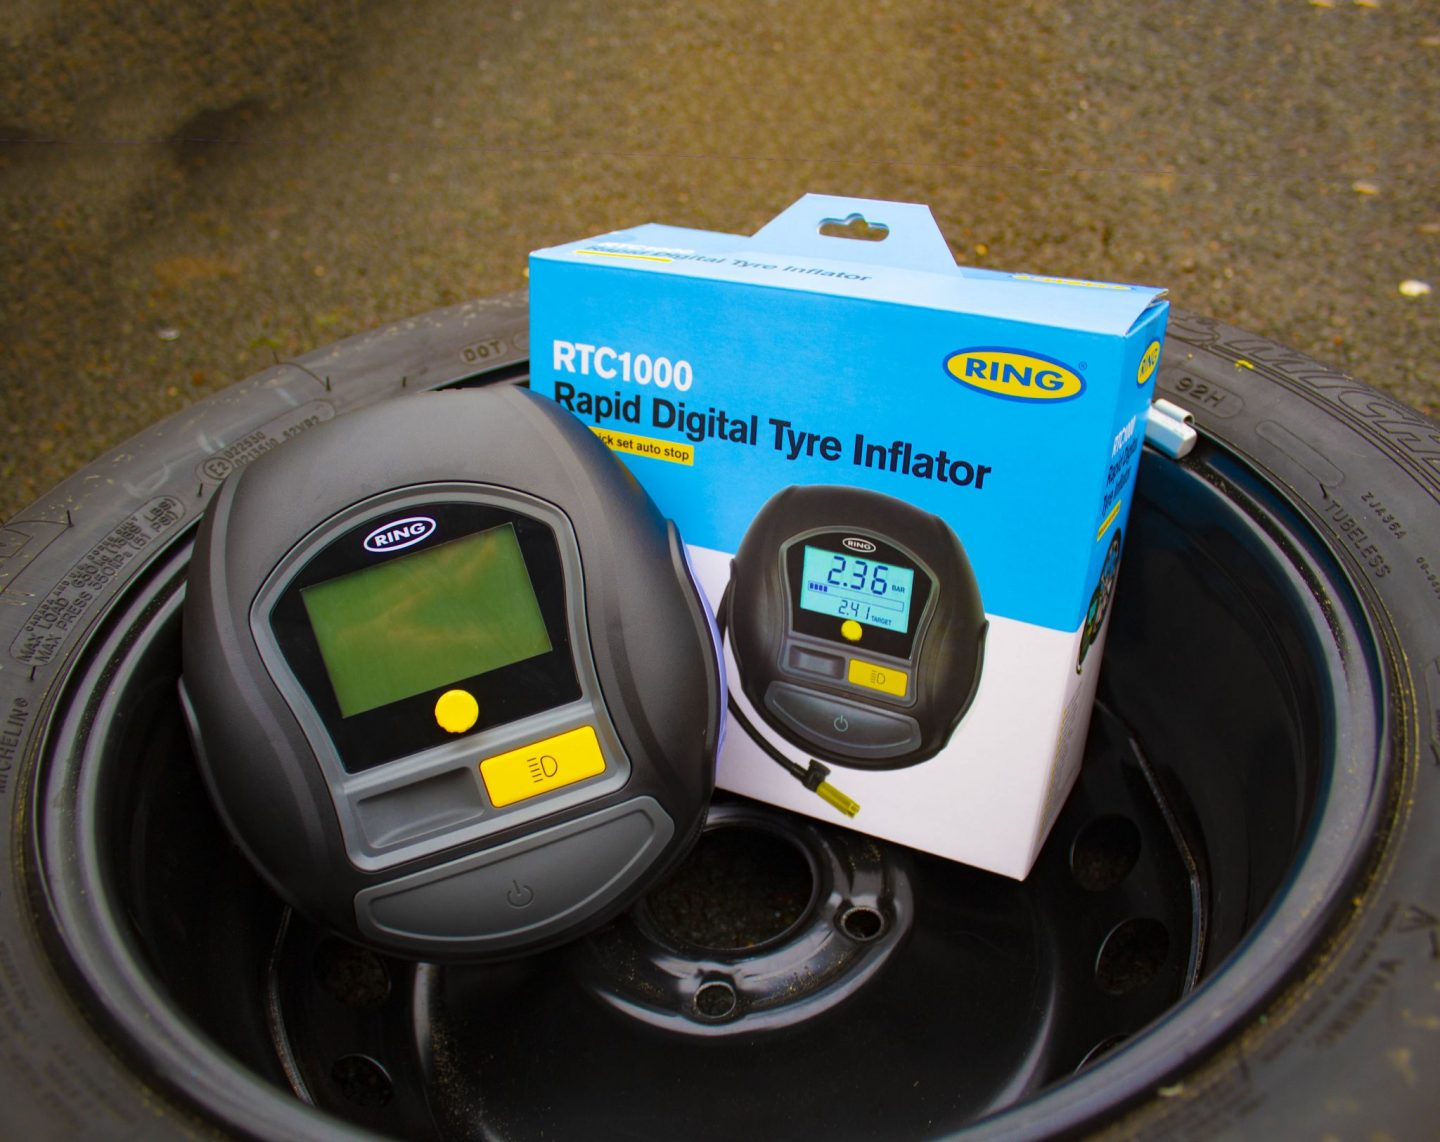 digital tyre inflator, ring digital tyre inflator, ring digital tyre inflator review, tyre inflator, RTC1000 rapid digital tyre inflator, car accessories, car accessory, motoring, dadbloguk, dadbloguk.com, dad blog uk, school run dad, 12v tyre inflator